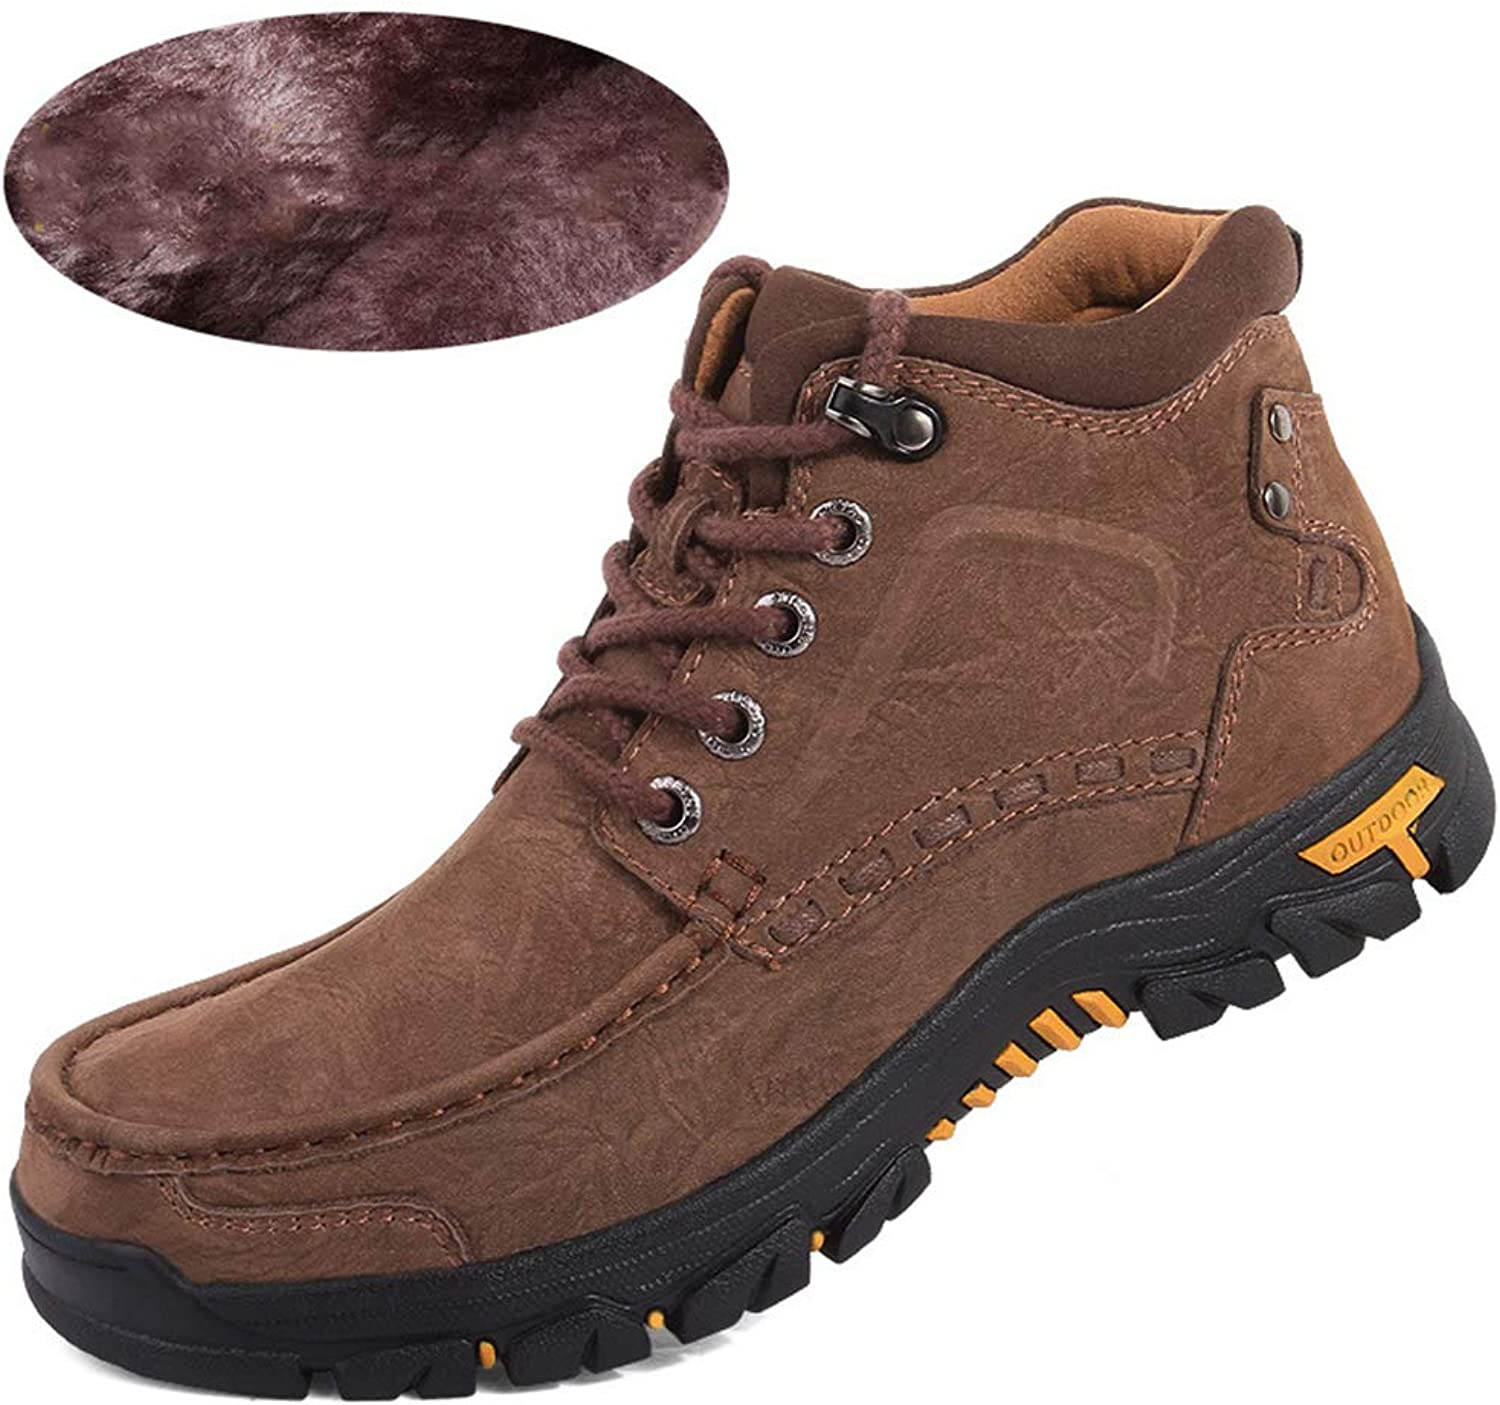 d96d40b4323f2 Phil Betty Mens Hiking Boots Lace Up Round-Toe Wear-Resistant ...